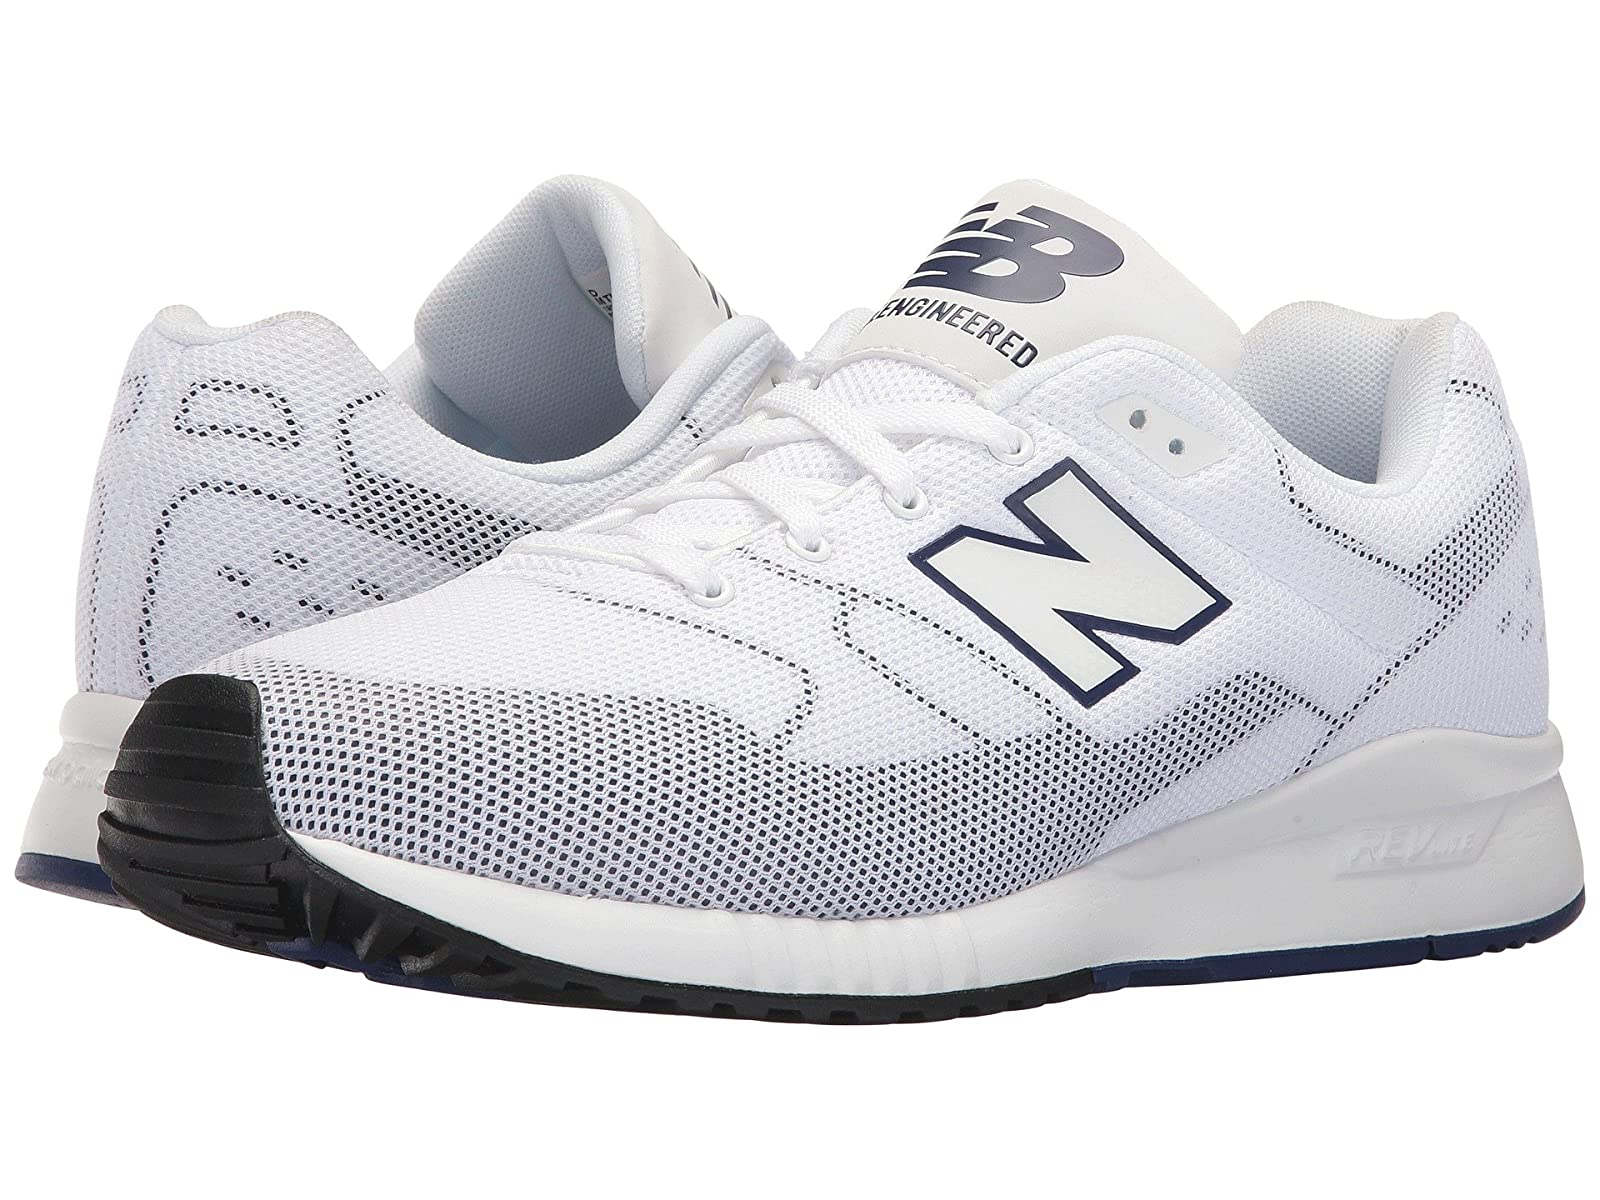 New Balance Classics MTL530Cheap and distinctive eye-catching shoes